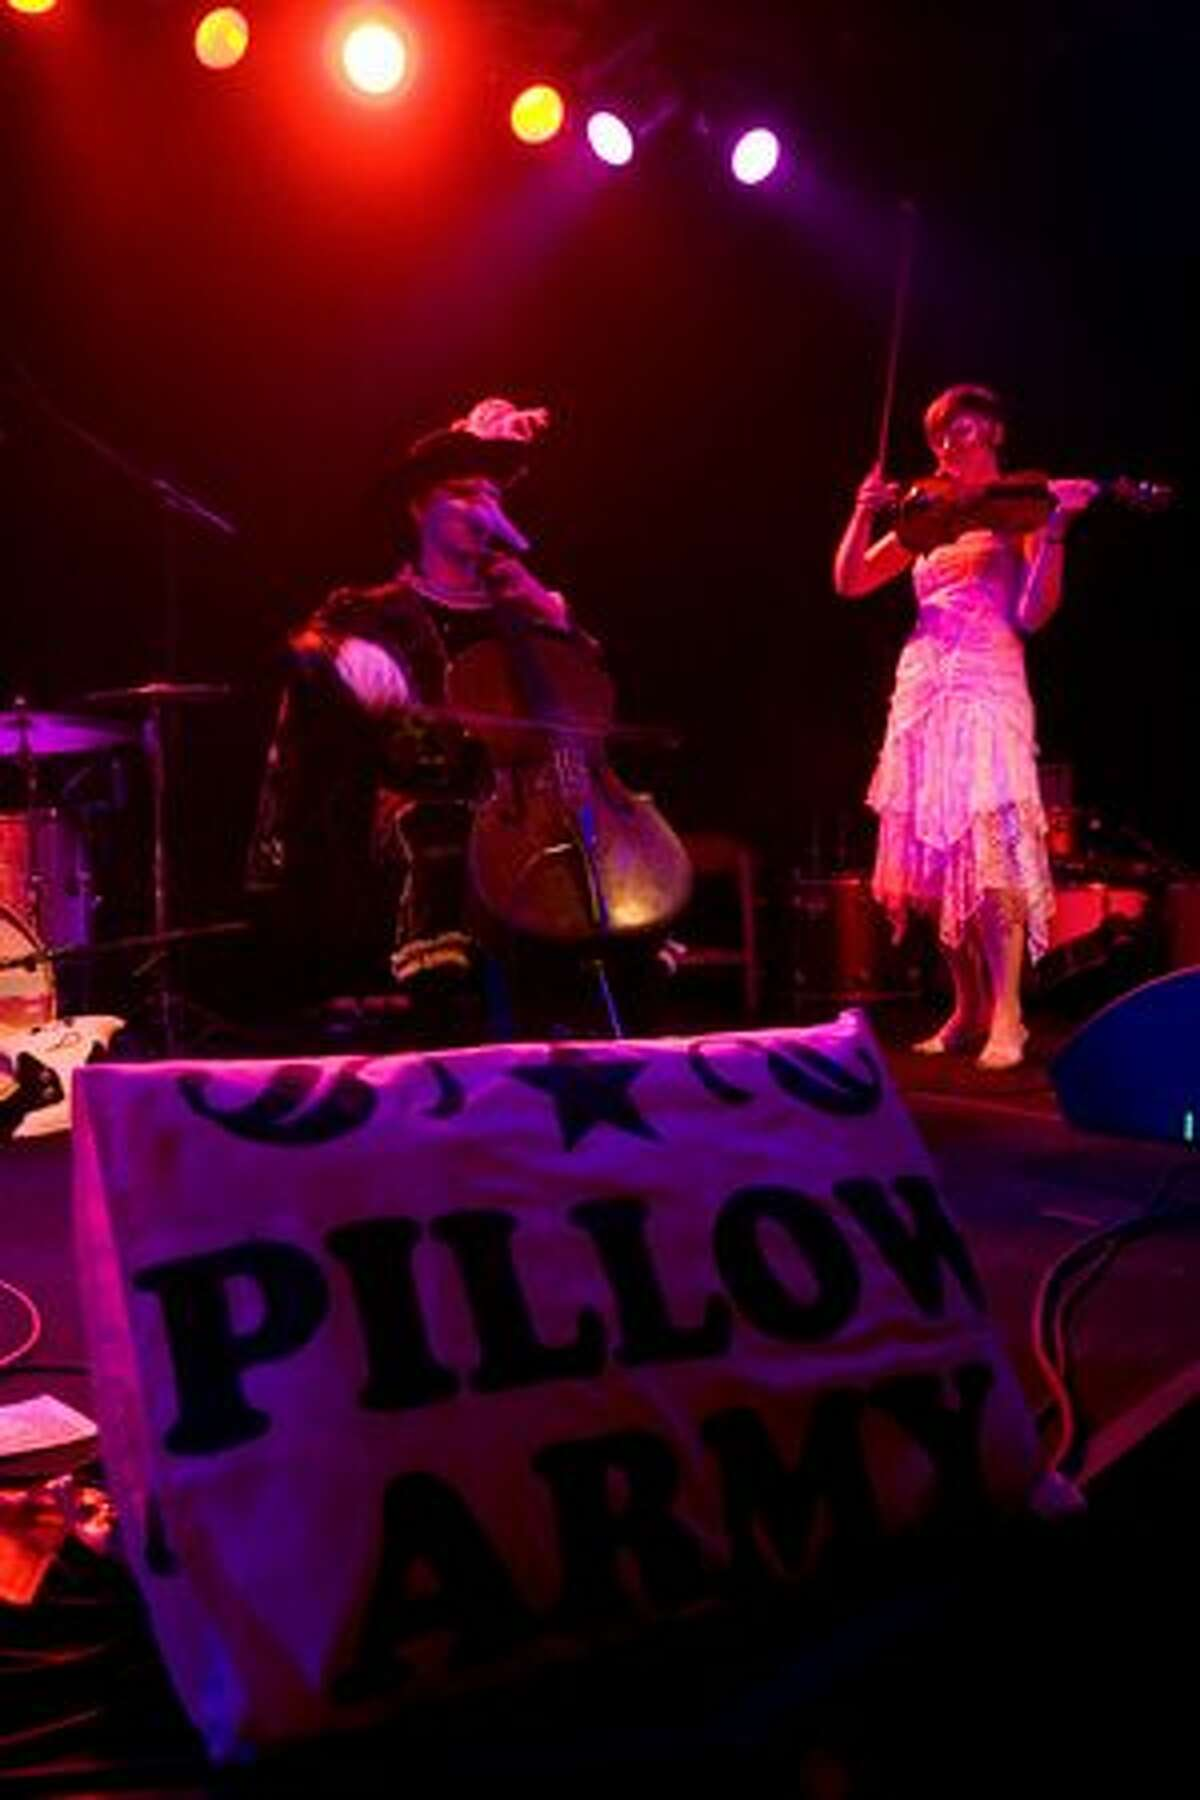 Pillow Army performs at The Crocodile for the Let's Get Lost CD release masquerade party on March 24, 2010.